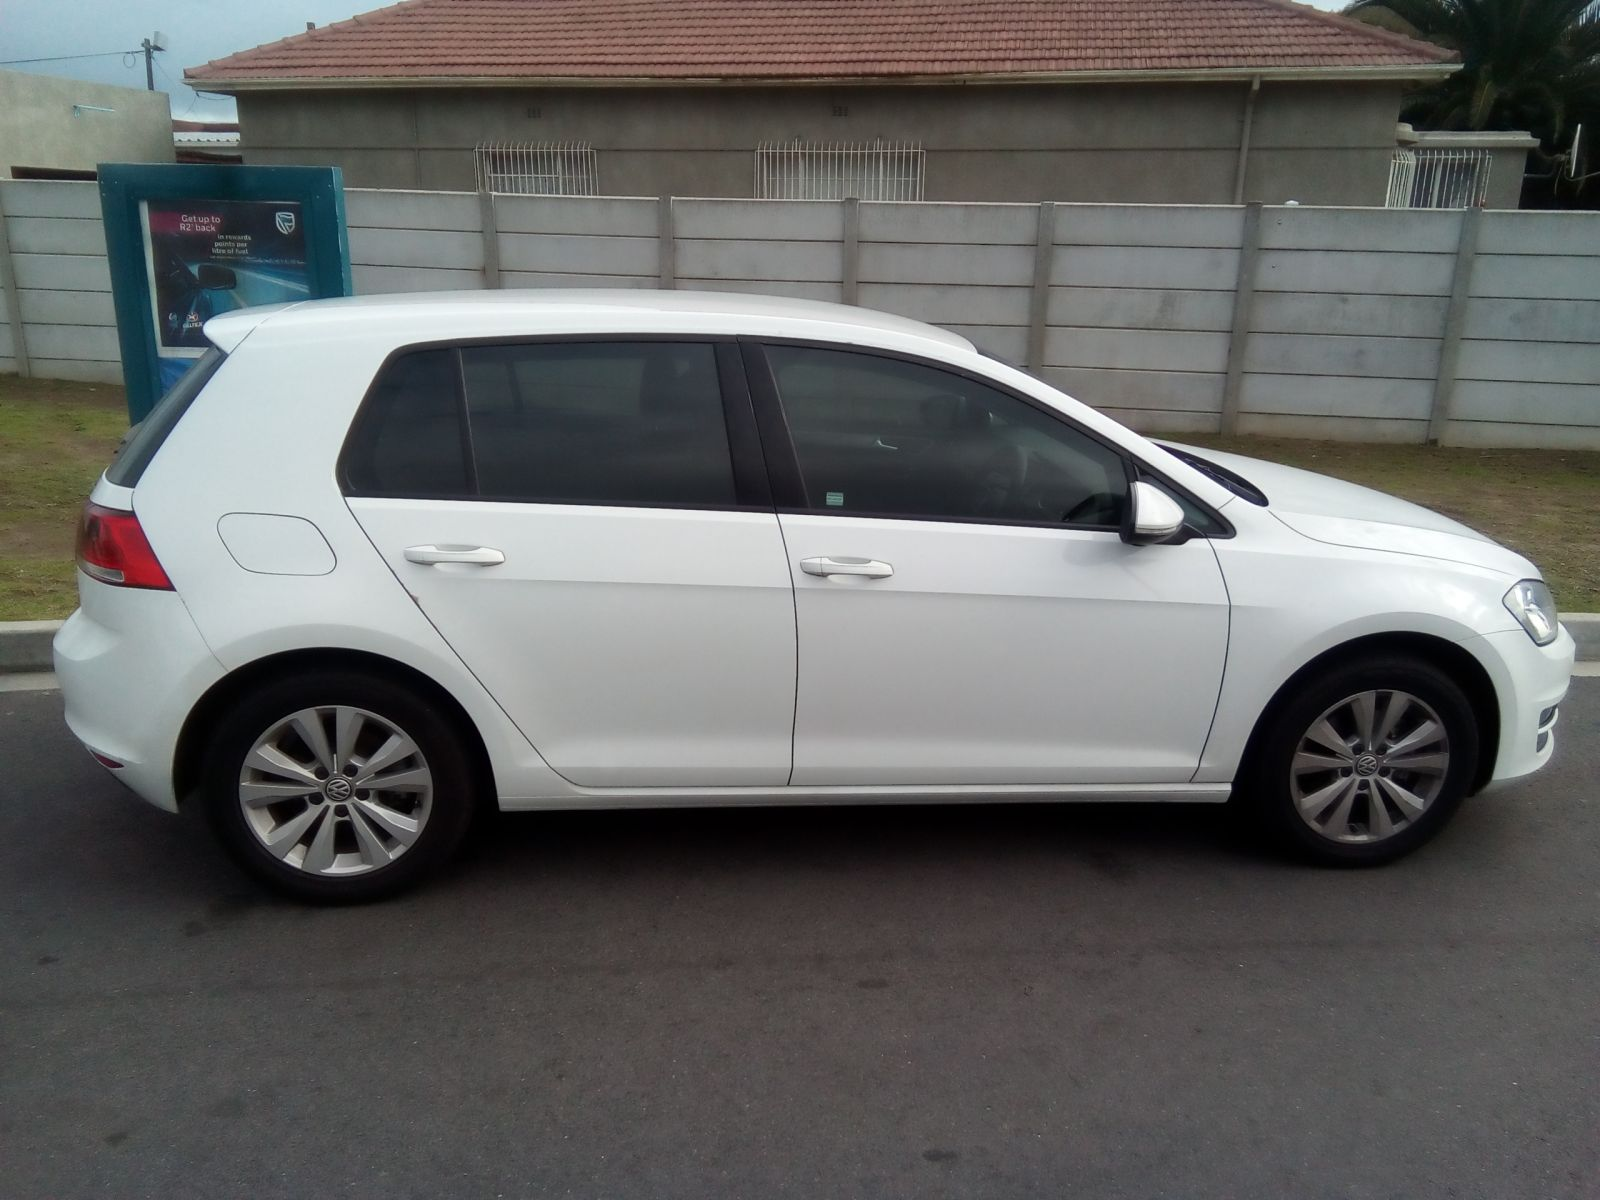 autonet helderberg golf 7 my16 golf vii 1 4 tsi comfortline dsg. Black Bedroom Furniture Sets. Home Design Ideas